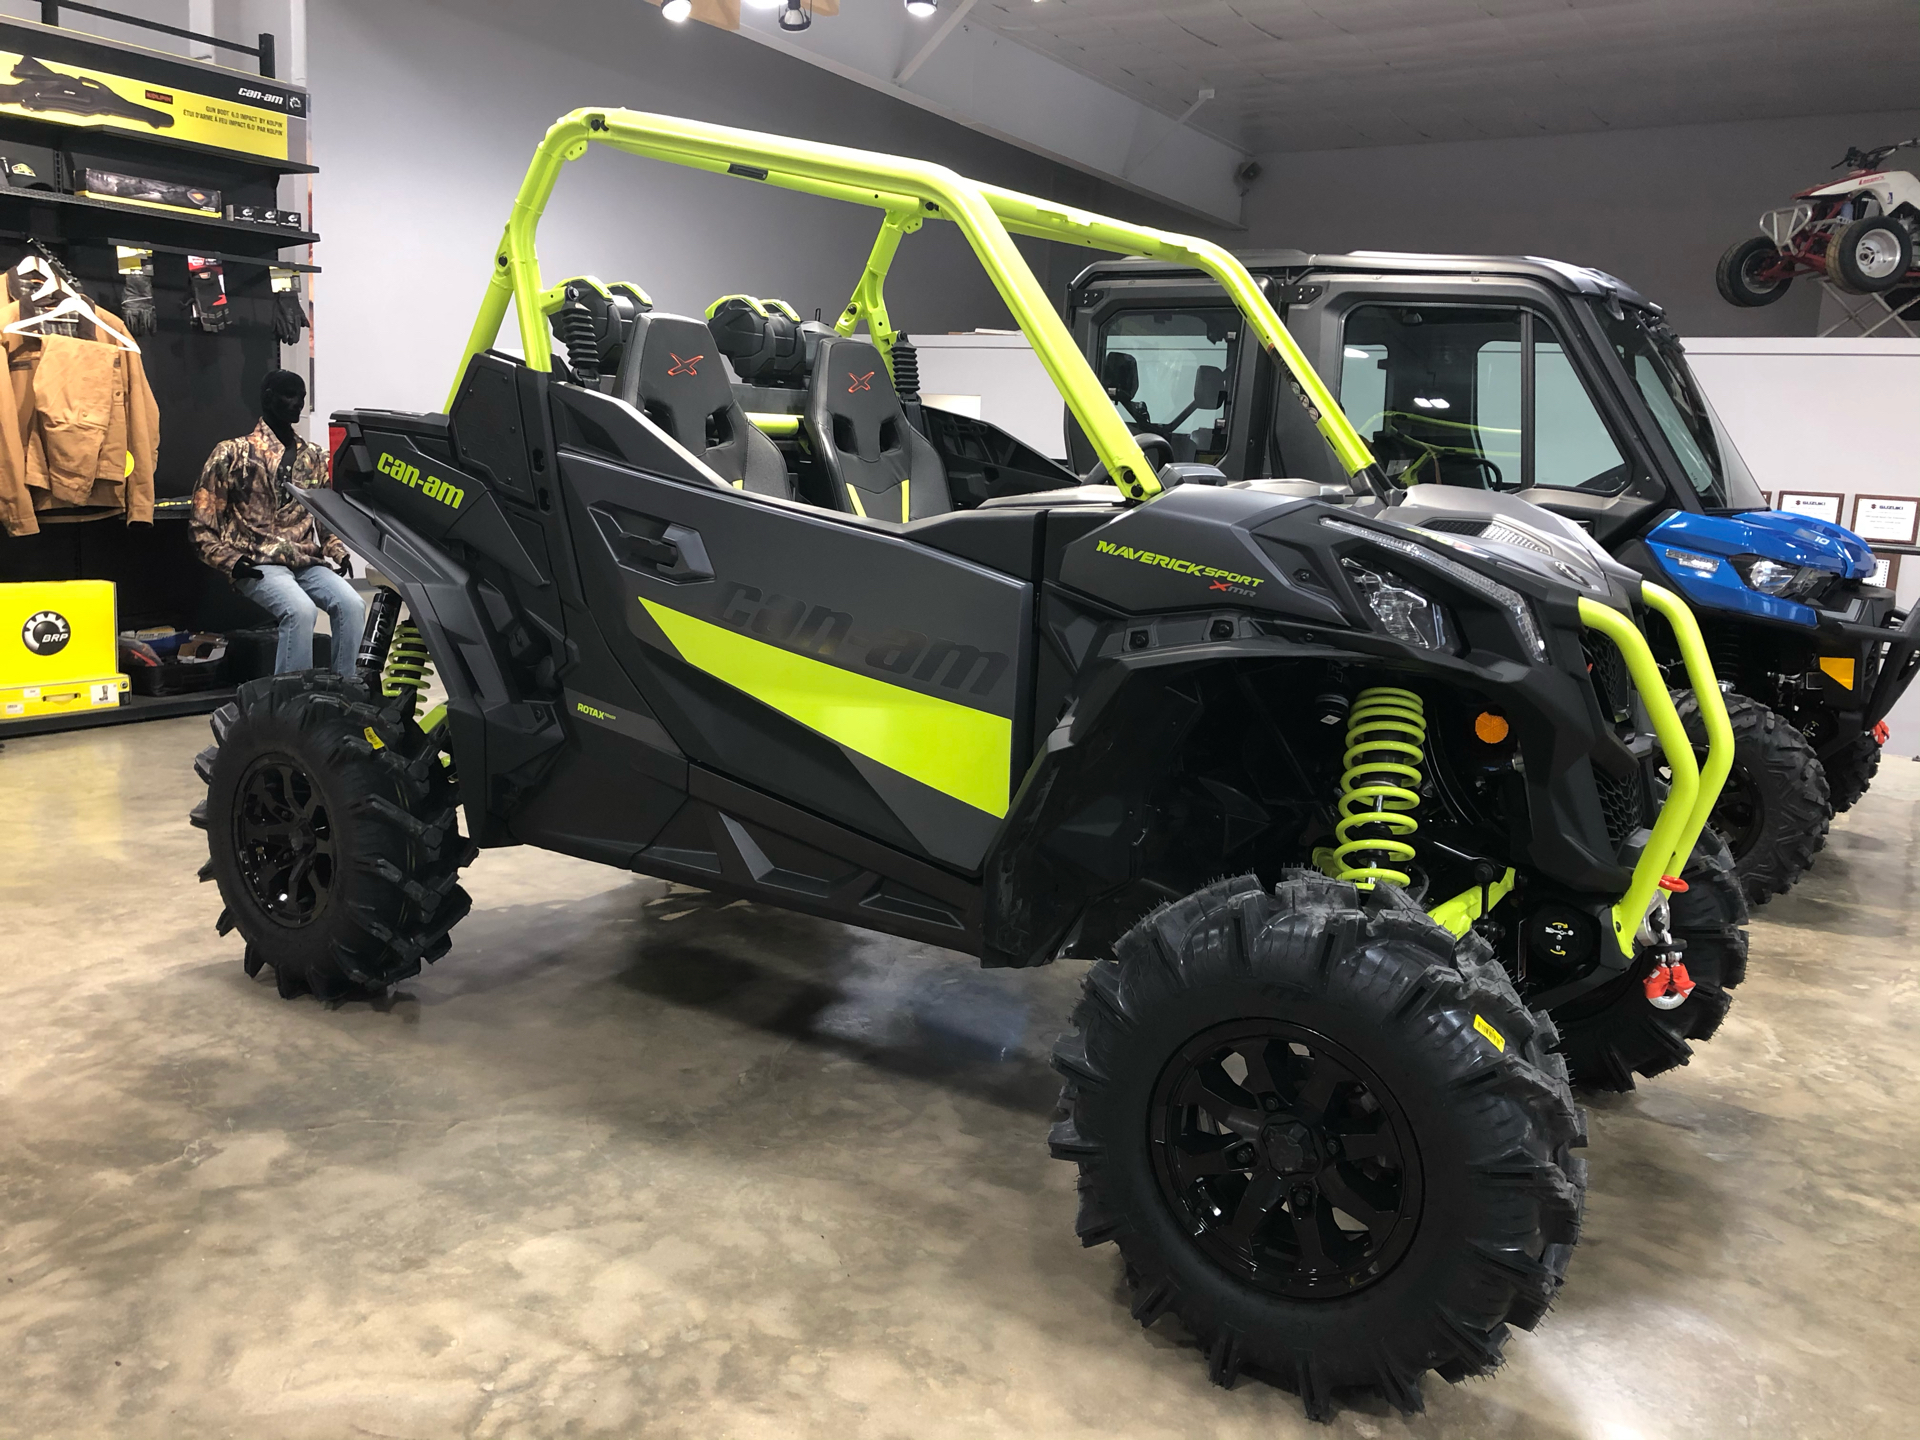 2021 Can-Am Maverick Sport X MR 1000R in Leland, Mississippi - Photo 2